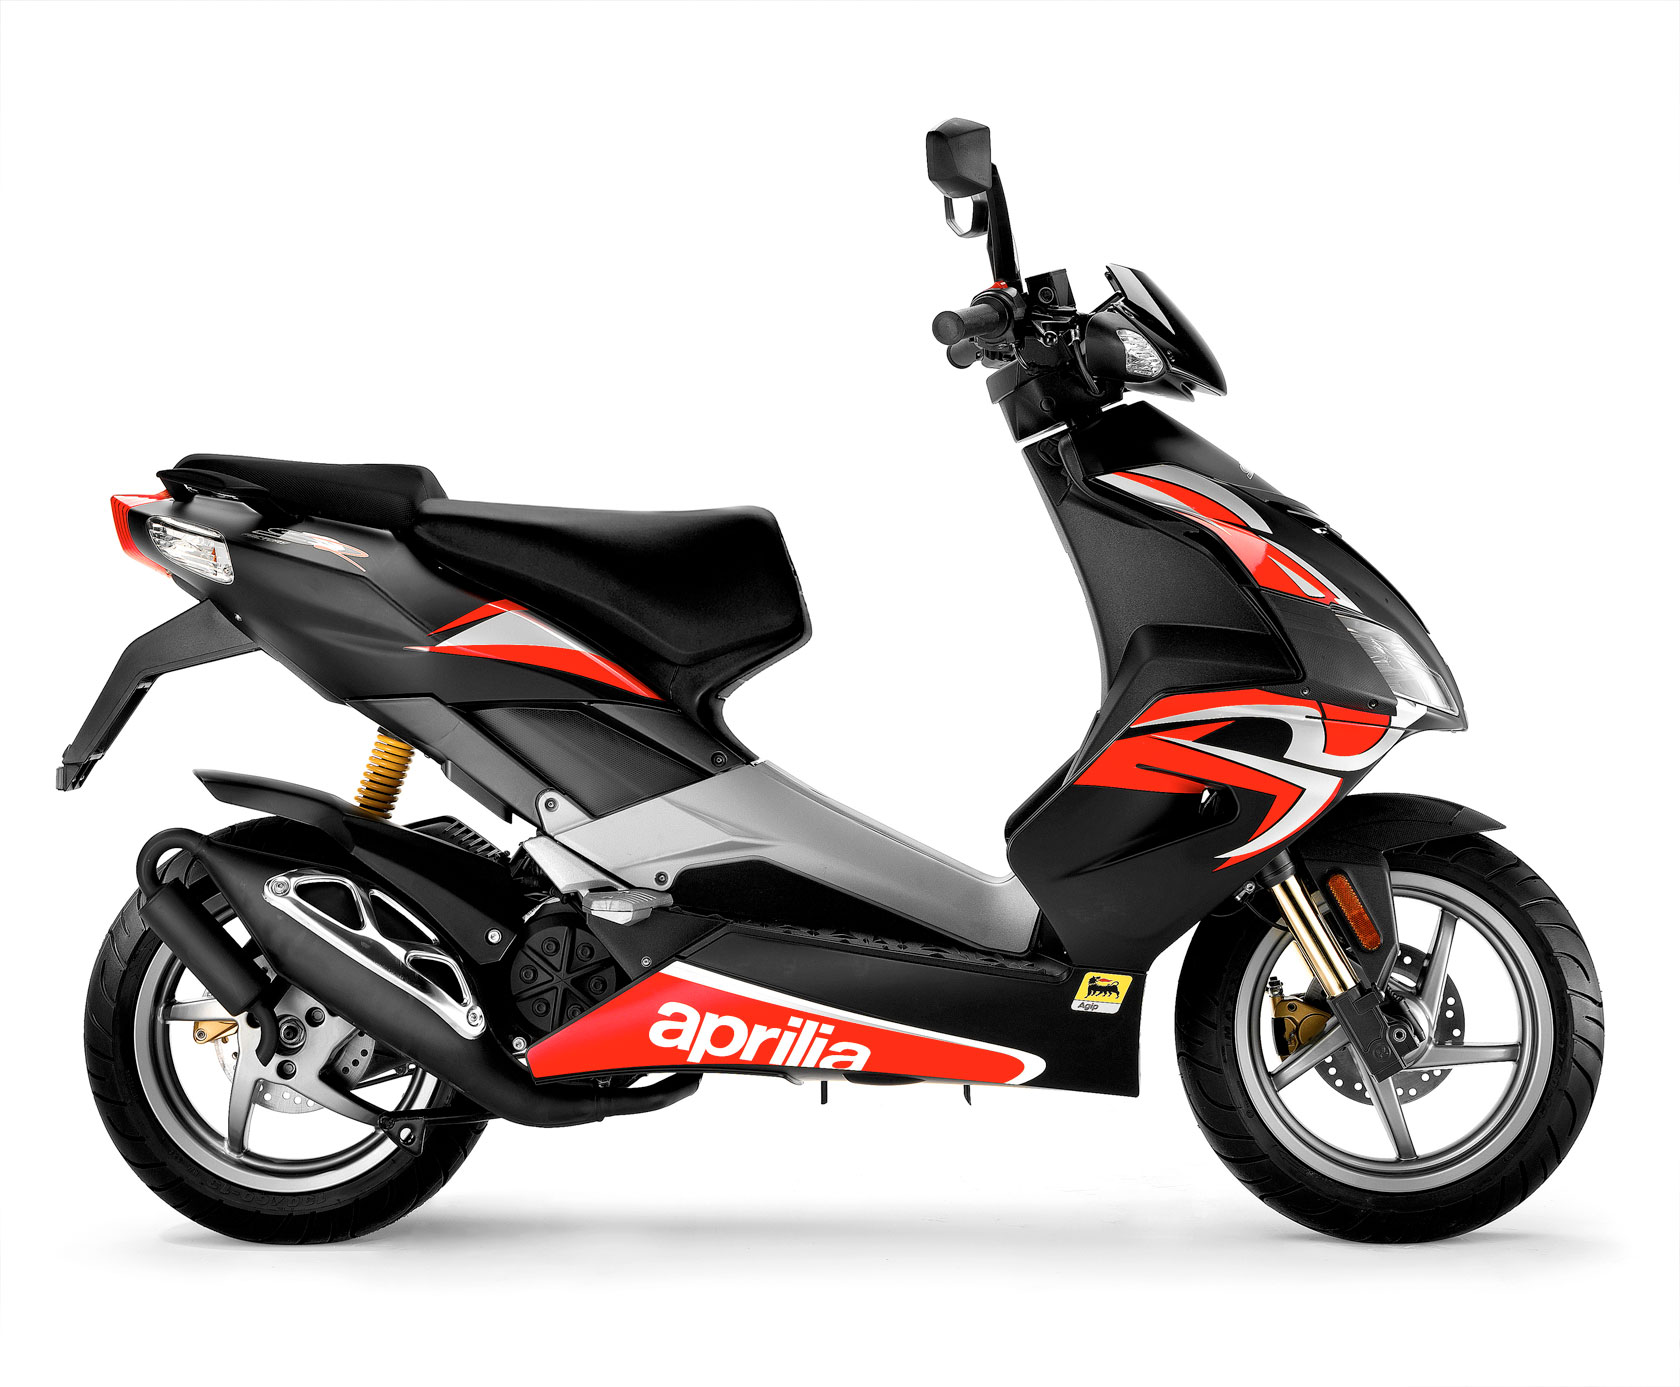 aprilia sr 50 specs 2010 2011 autoevolution. Black Bedroom Furniture Sets. Home Design Ideas